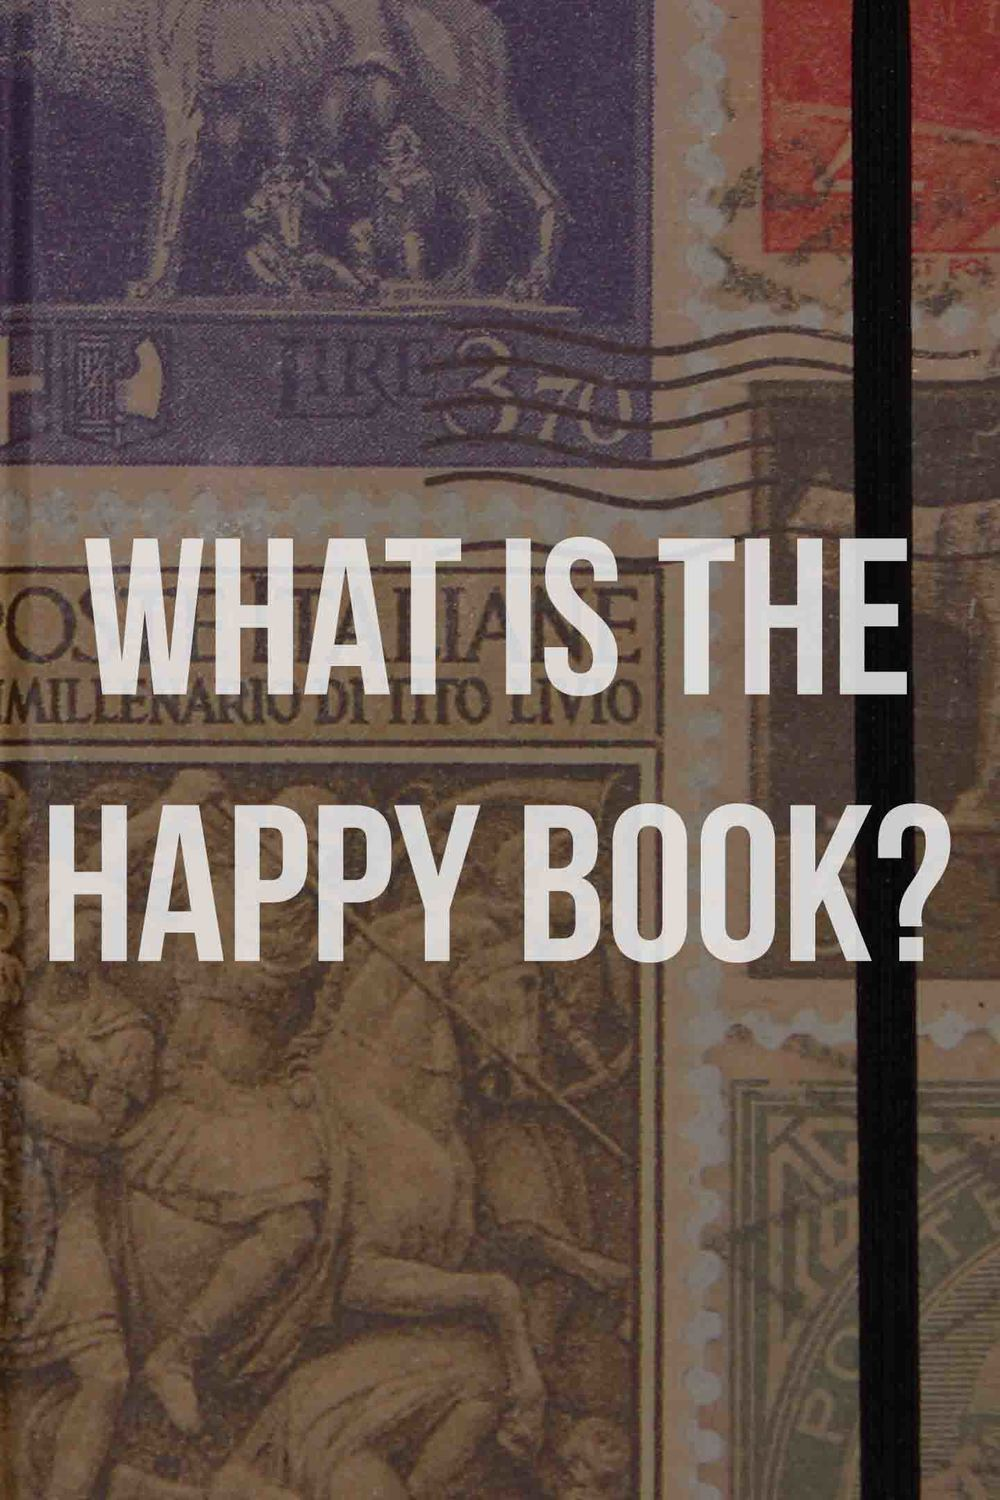 The background is the real happy book.